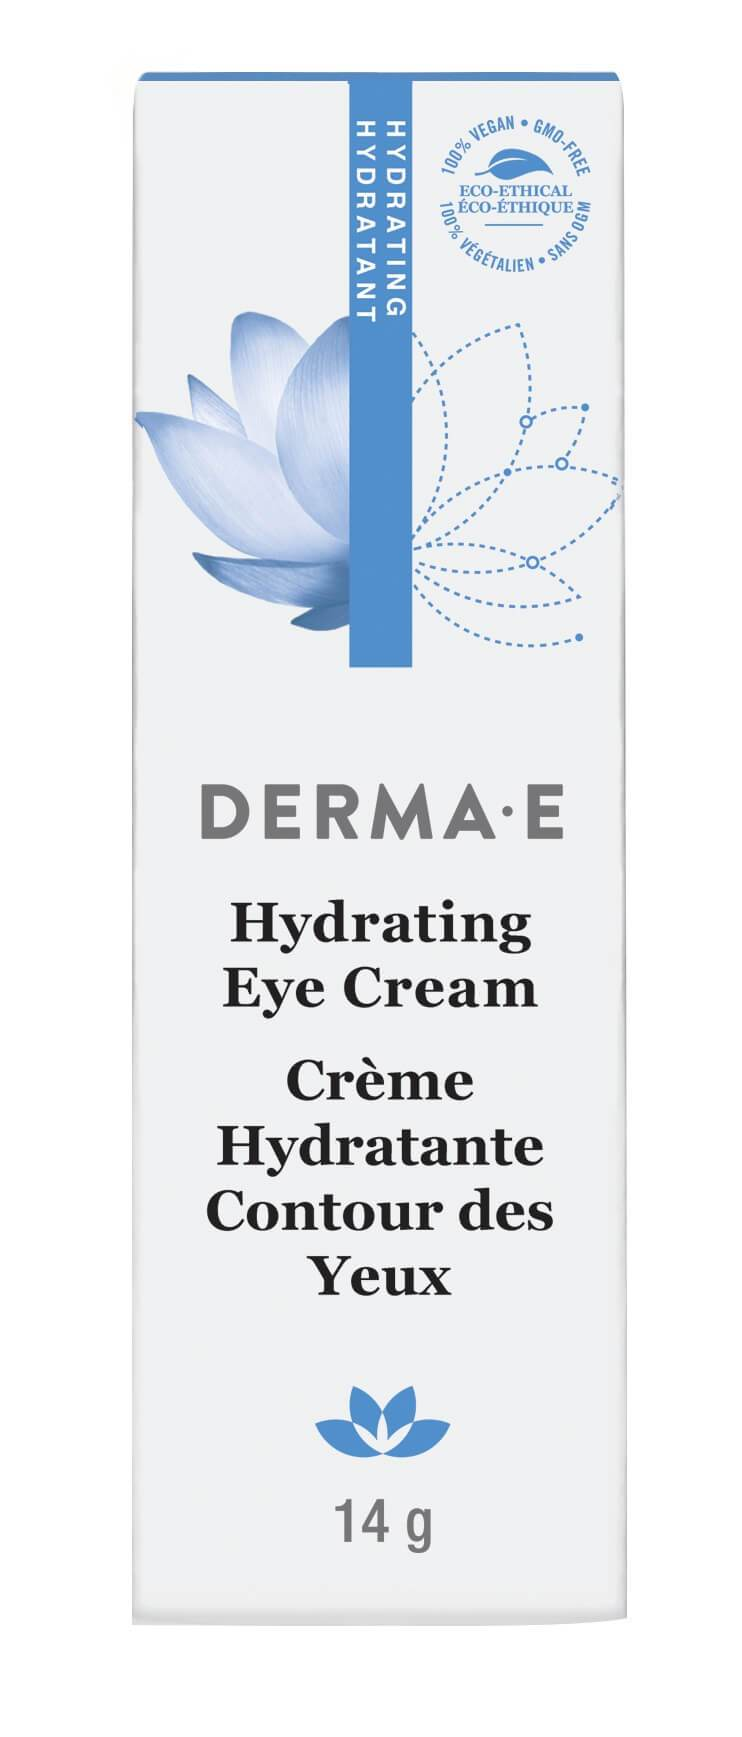 Beauty & Skin Care,Gluten Free,Vegan,Vegetarian,Non GMO - Derma E - Hydrating Eye Crème With Hyaluronic Acid & Pyconogenol®